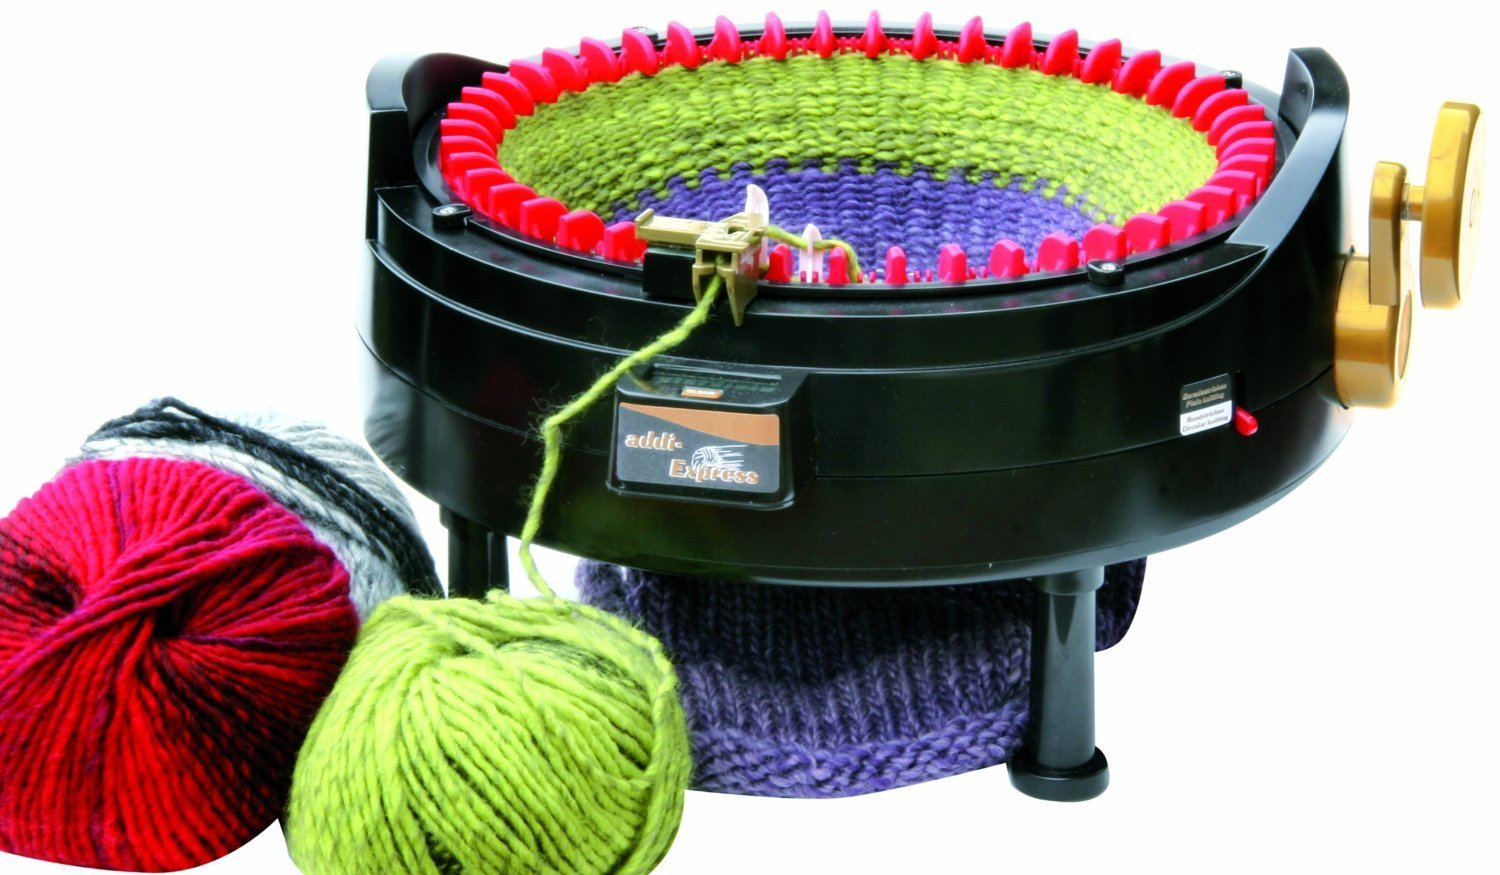 Addi Express King Knitting Machine